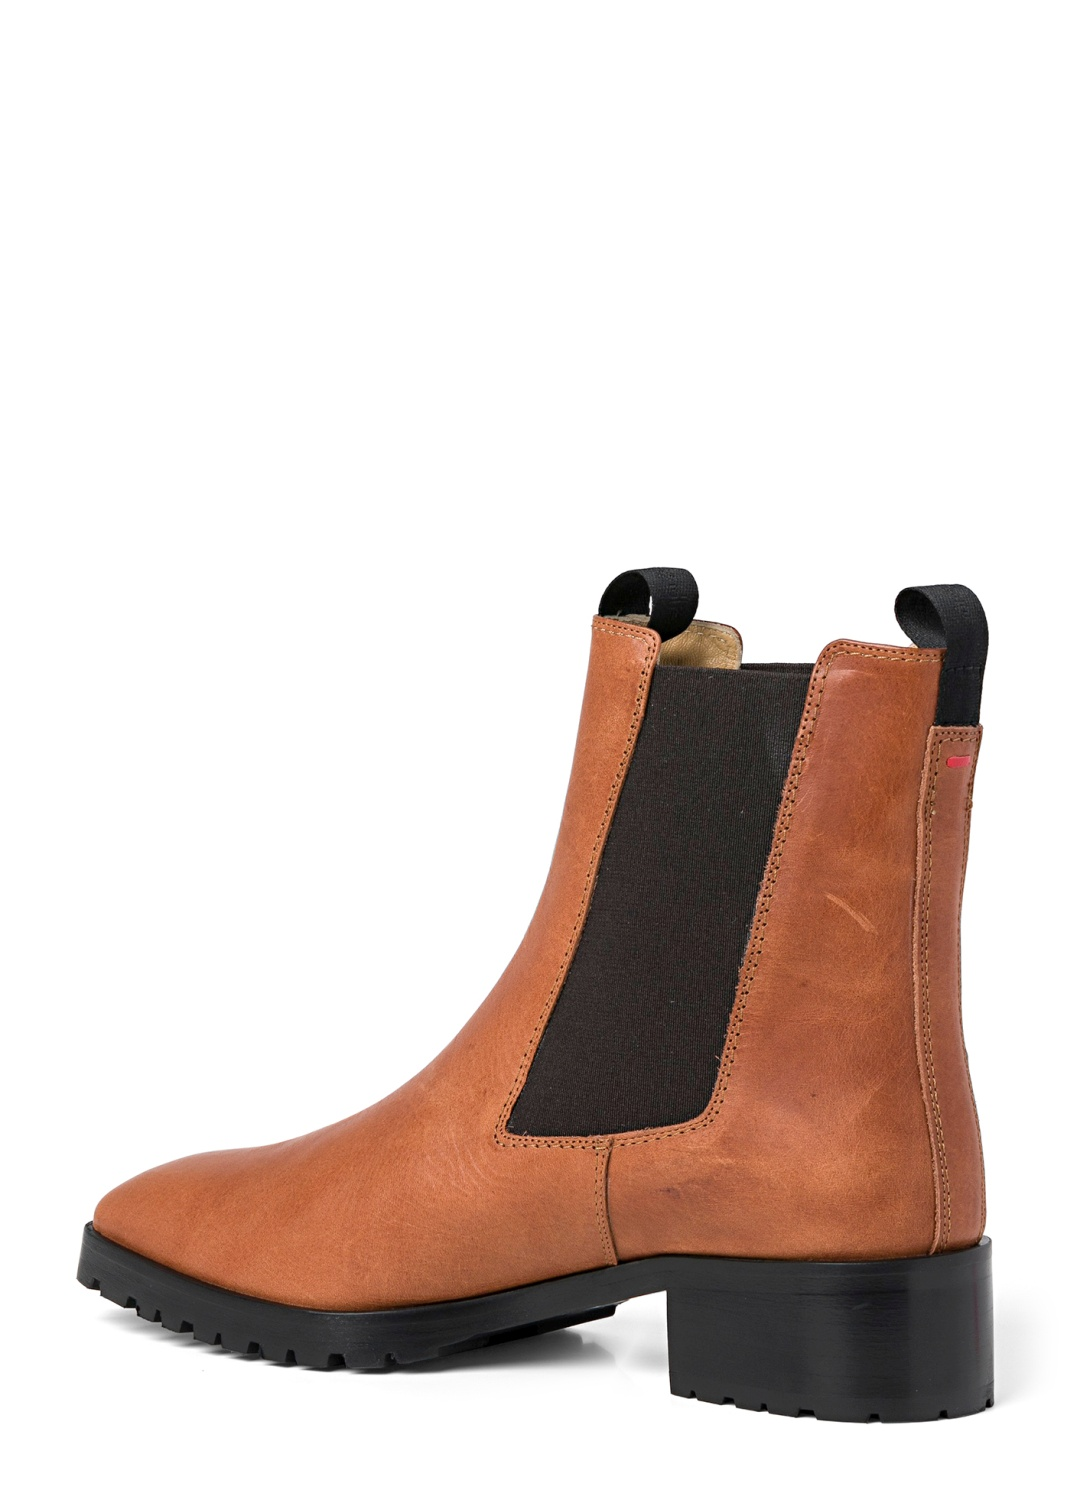 15_Karlo Veg Leather Chelsea Boot image number 2